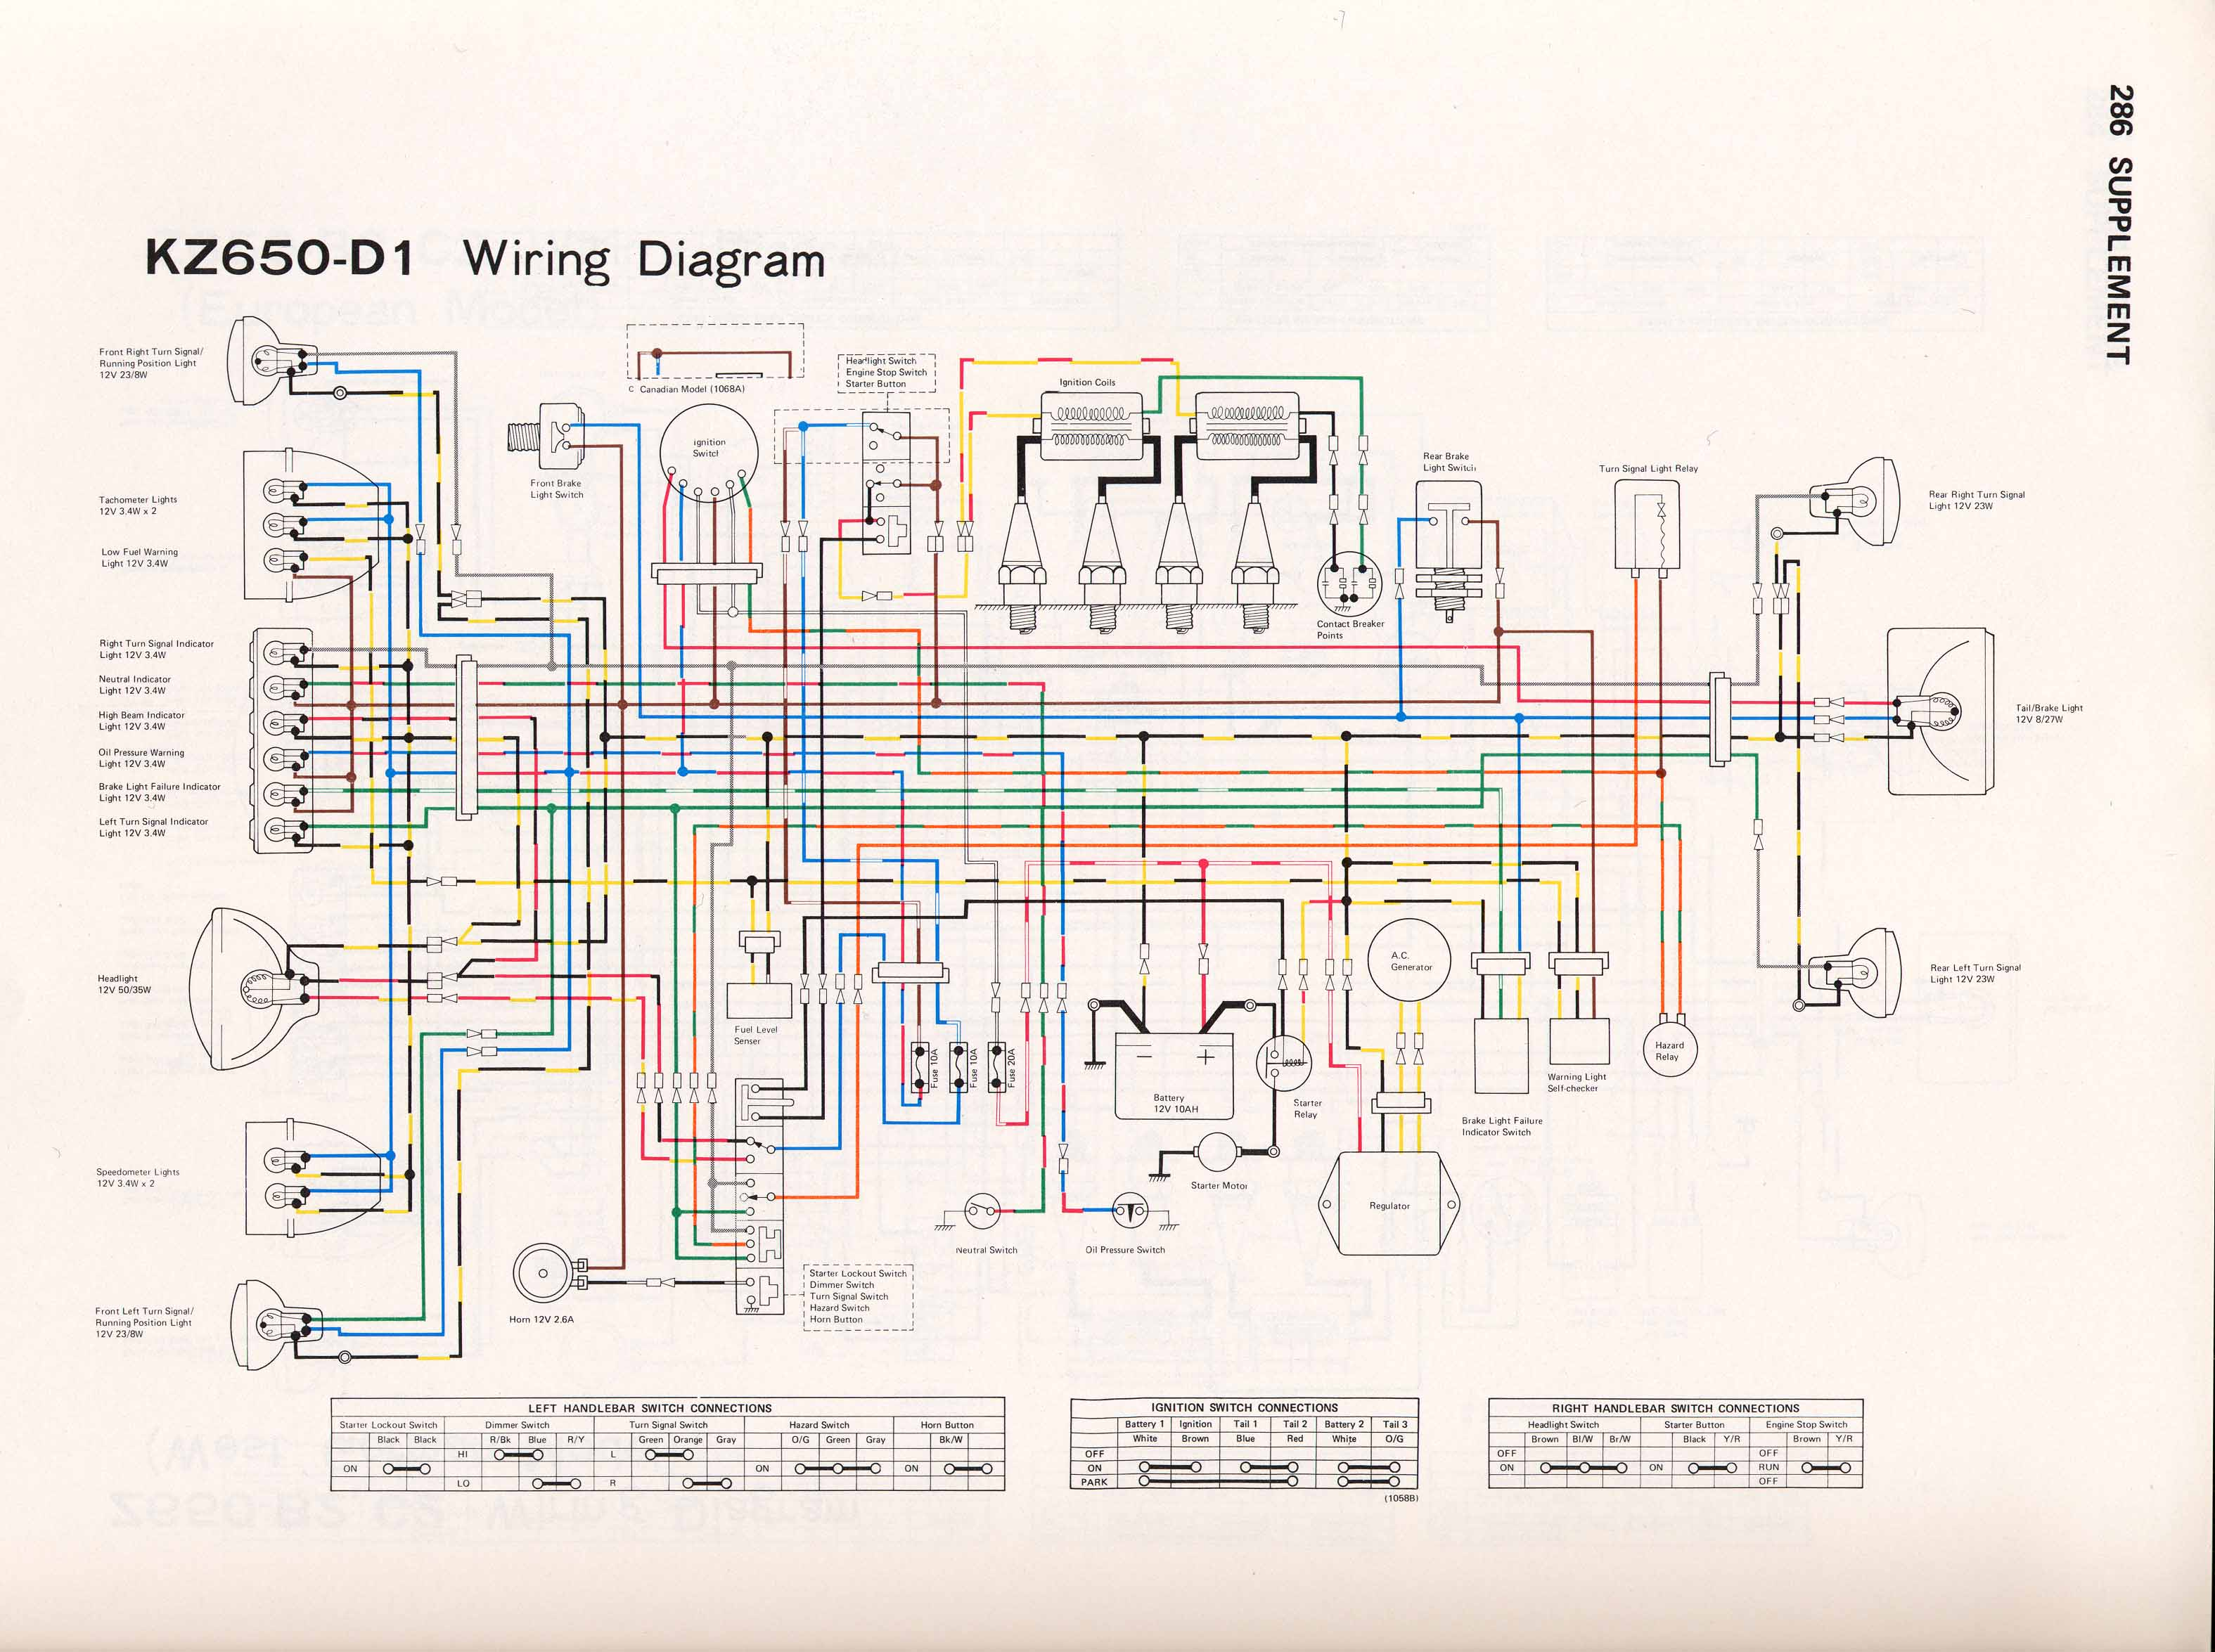 H1 Wiring Diagram | New Wiring Resources 2019 on